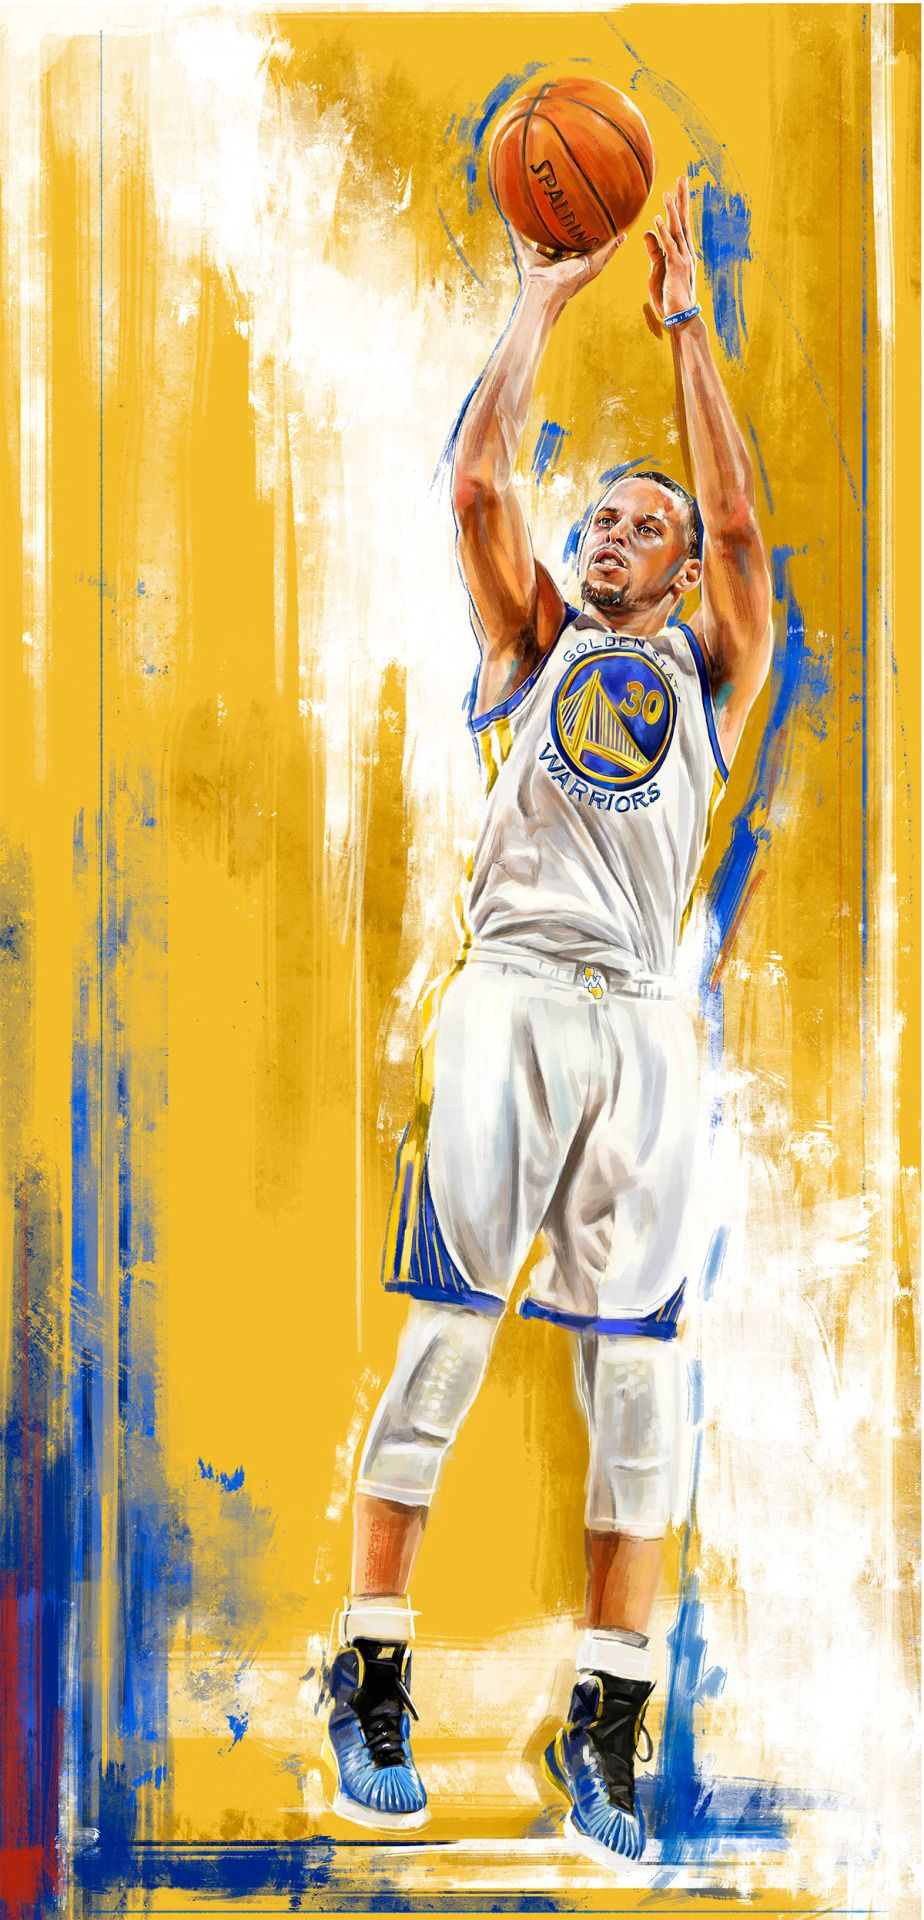 Fabian Deportes By Robert Bruno Nba Basketball Art Nba Stephen Curry Nba Pictures